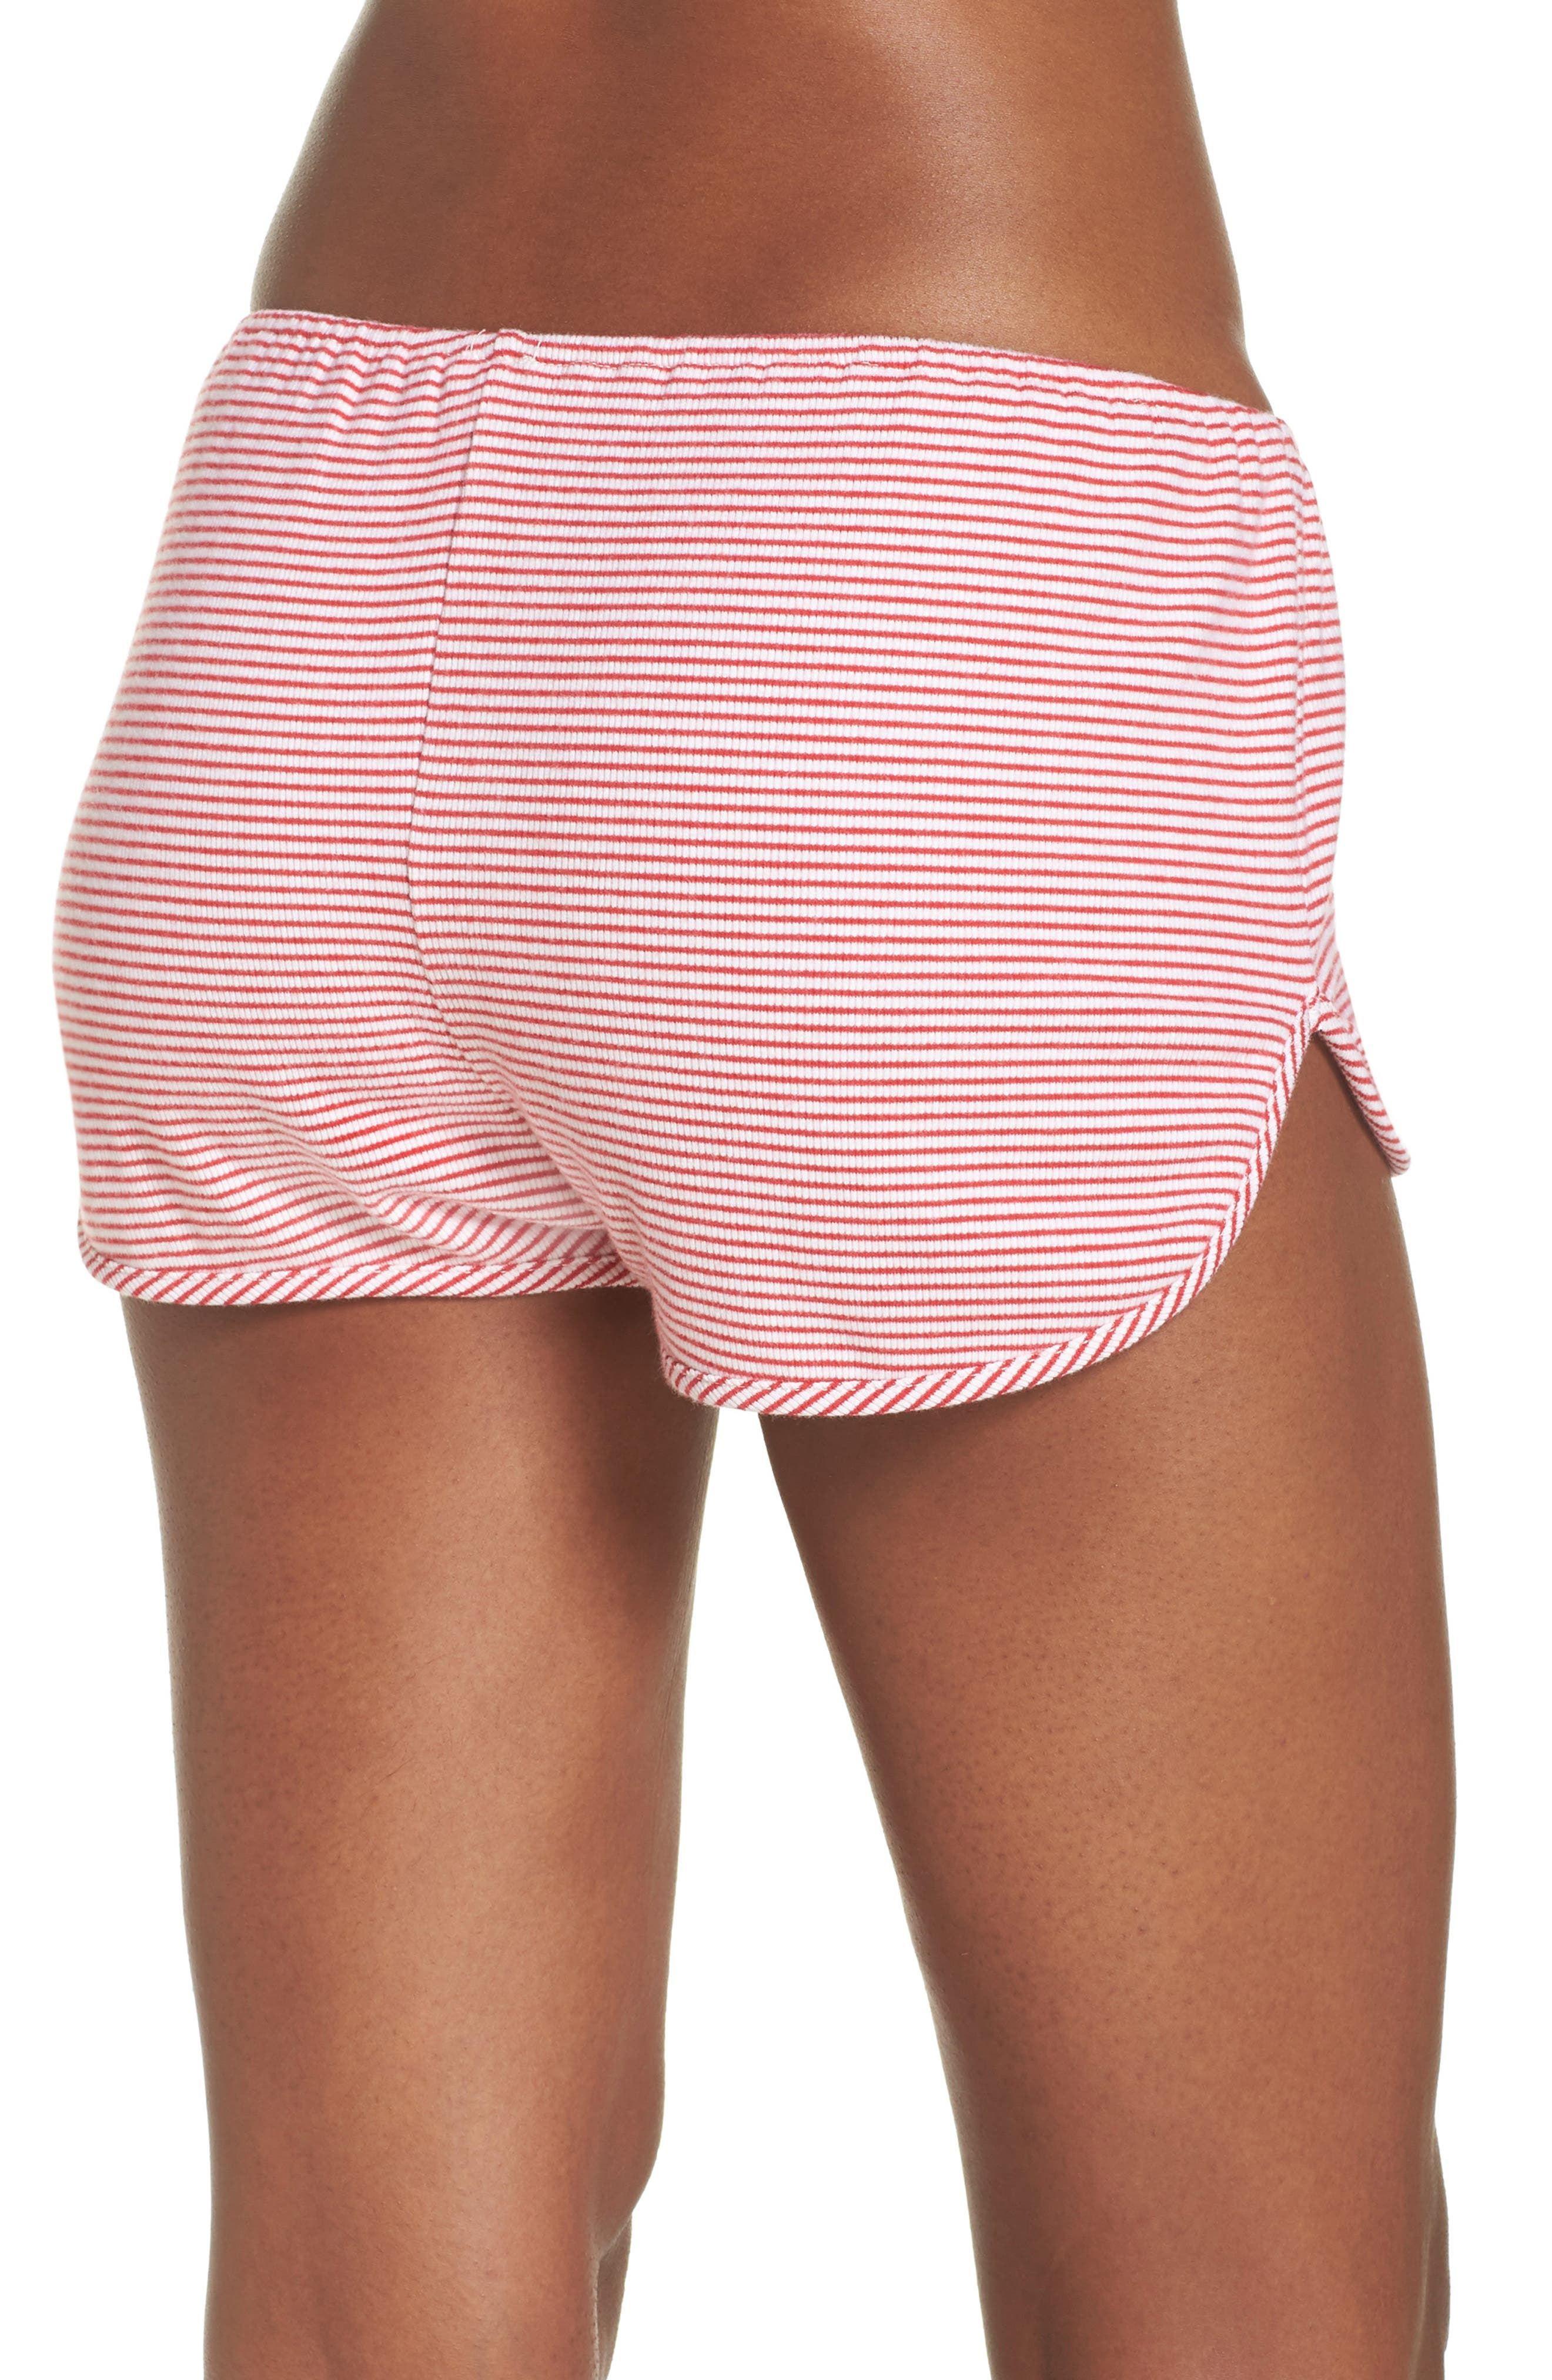 Penny Shorts,                             Alternate thumbnail 2, color,                             Red Stripe